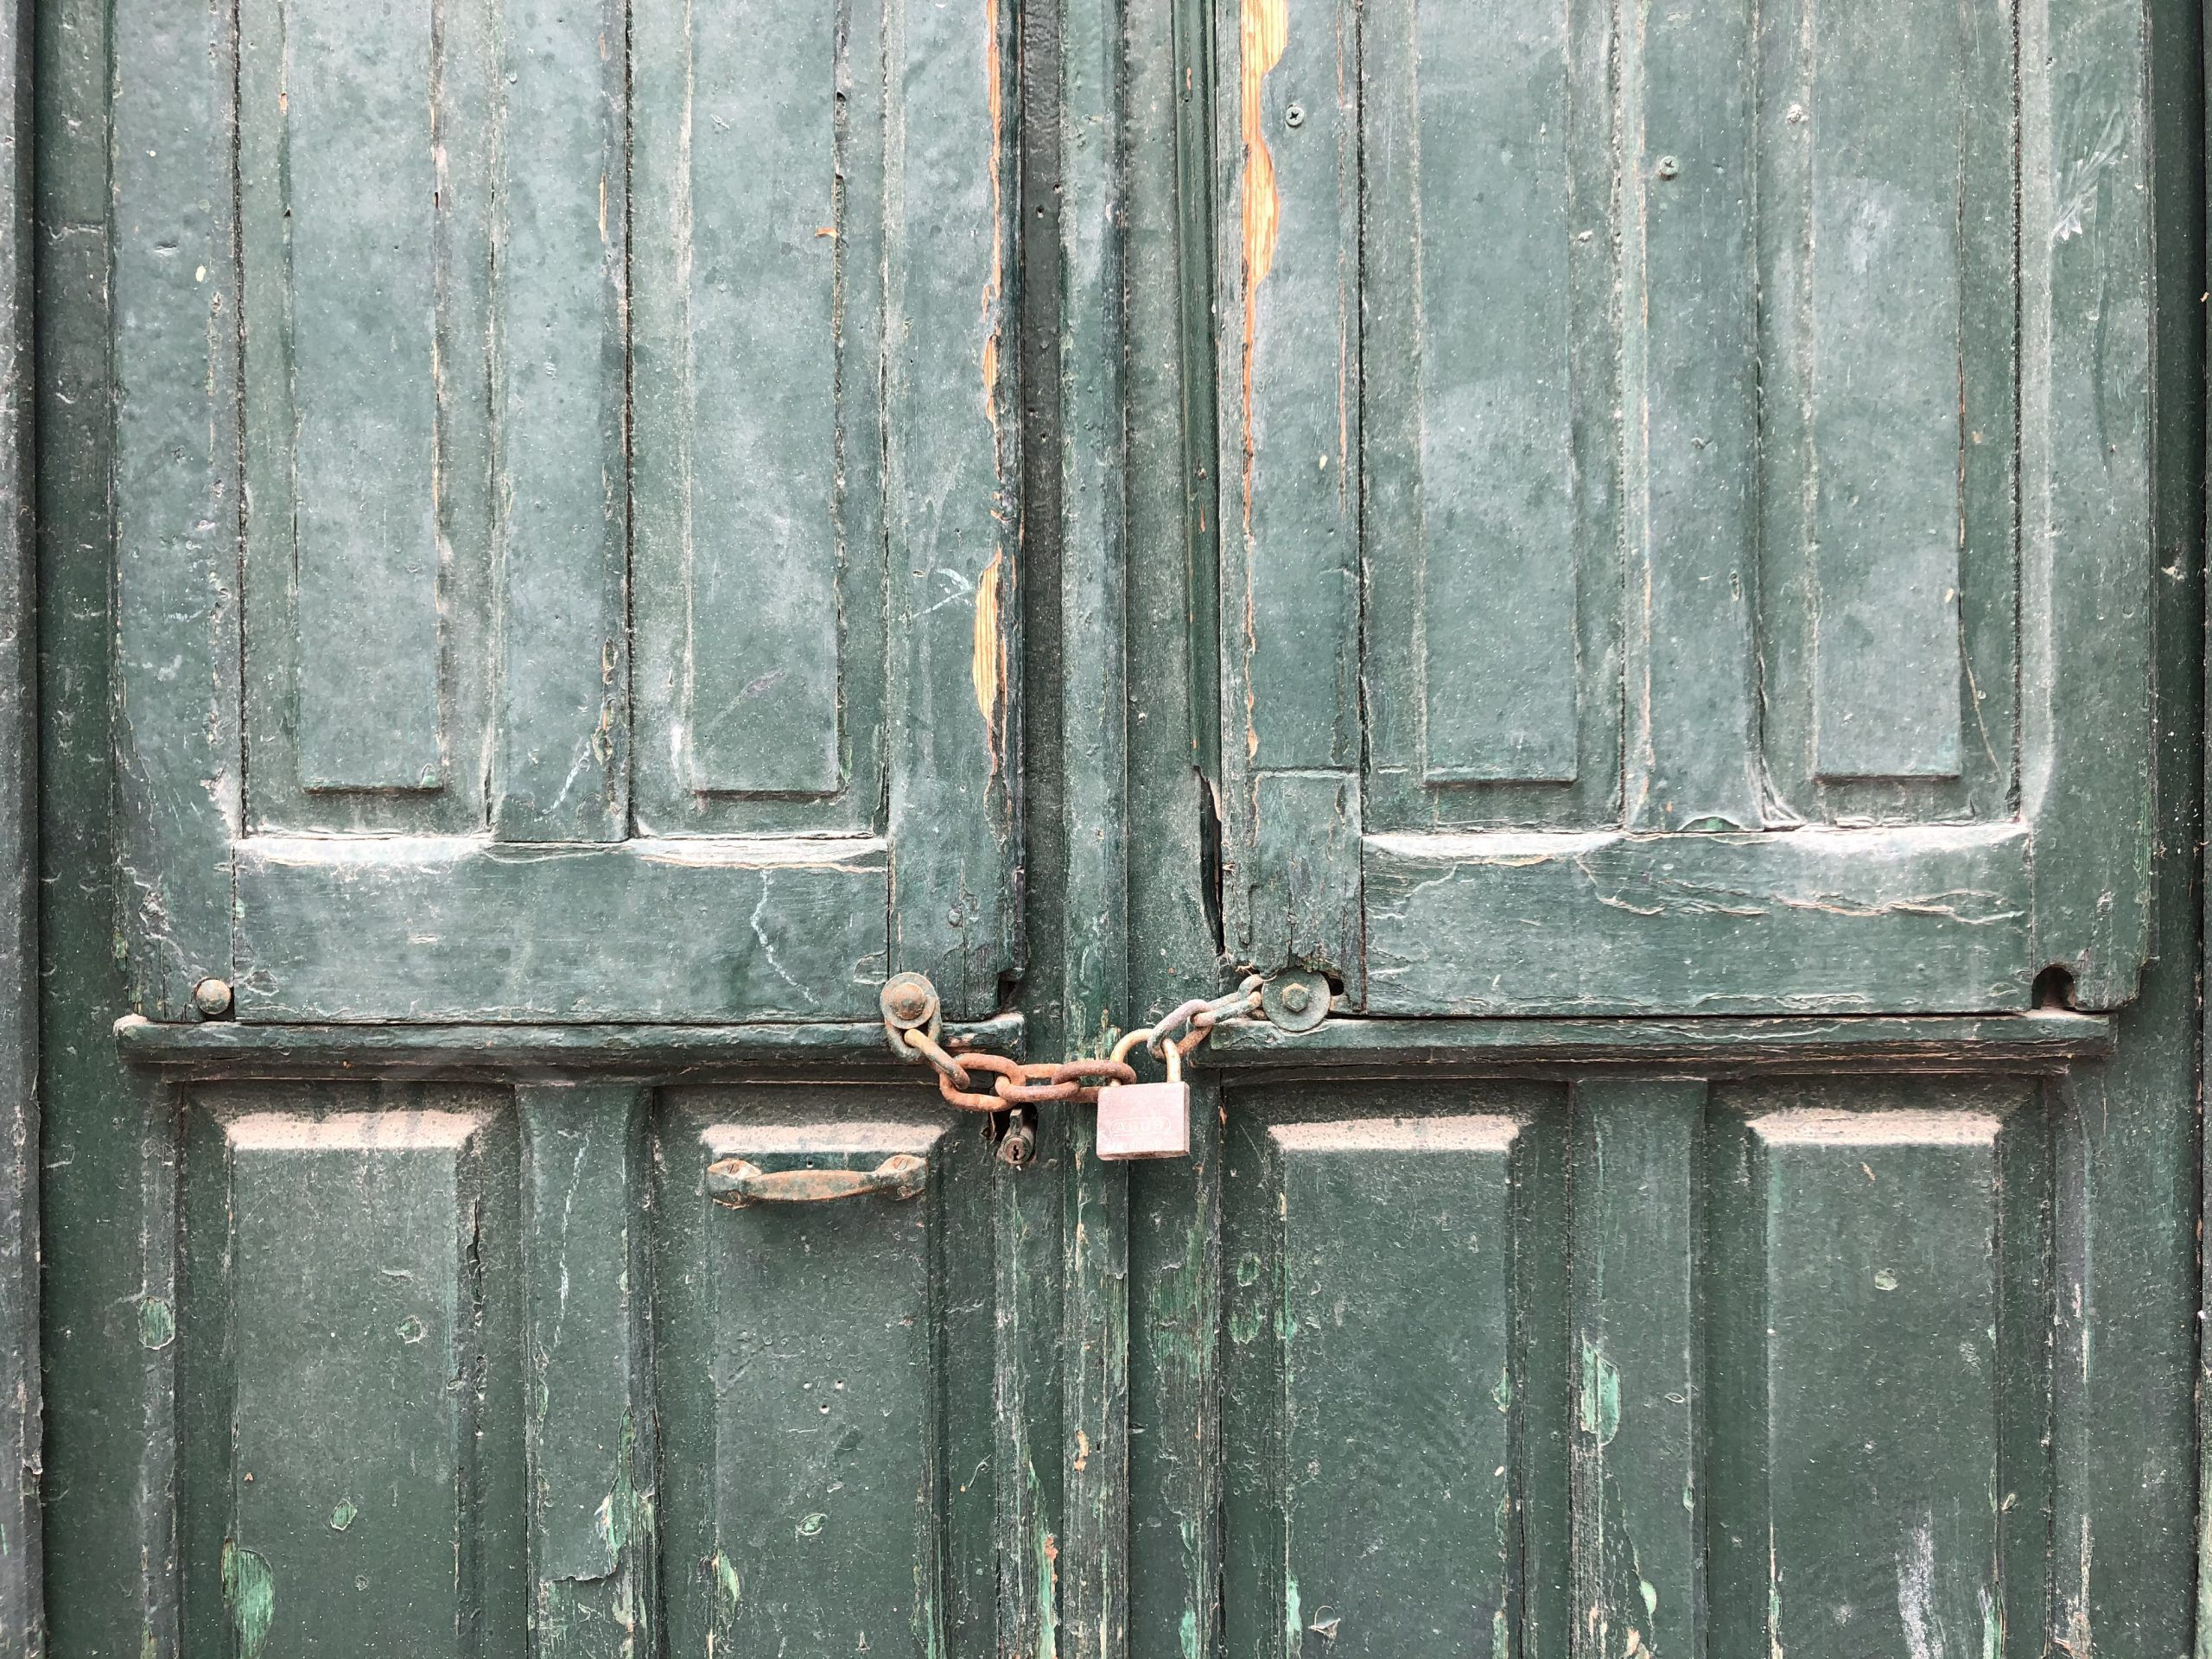 Mi casa no es su casa: what to do if squatters move in to your property